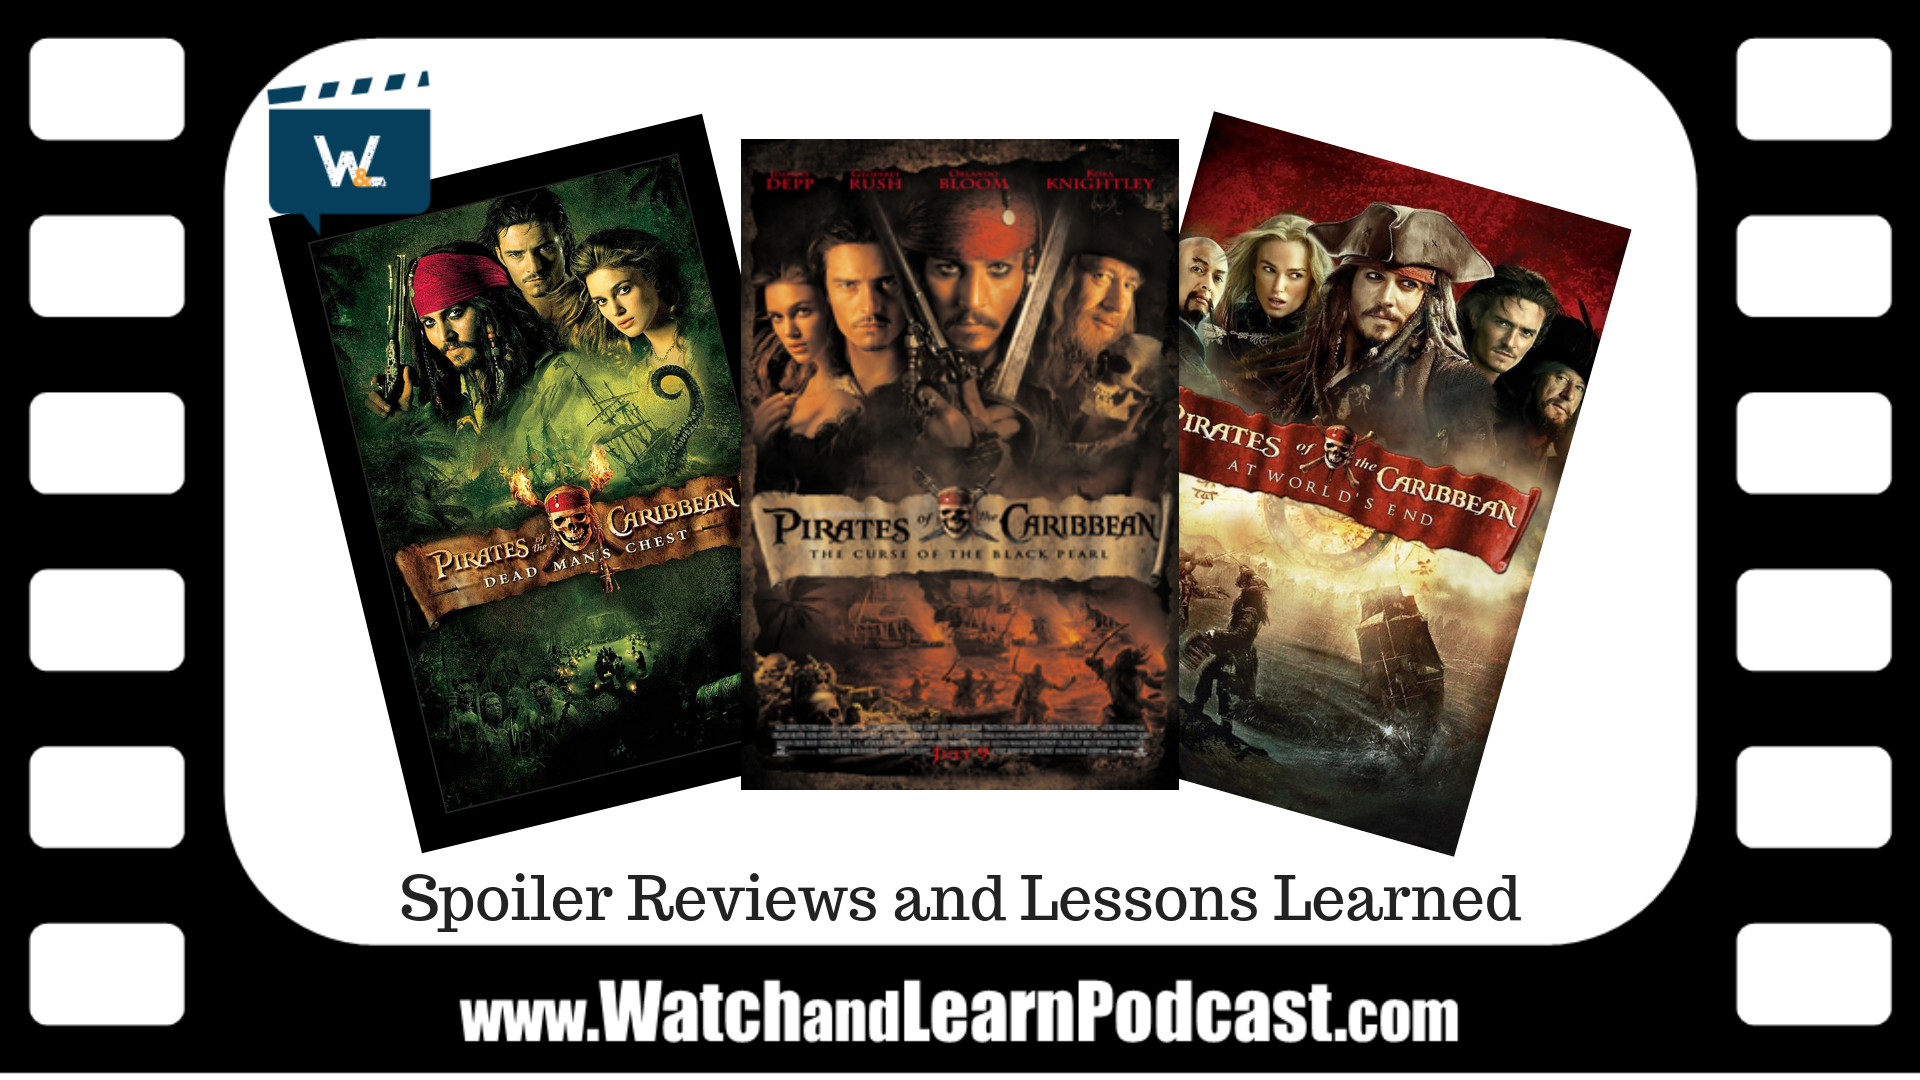 Pirates of the Caribbean Trilogy spoiler review and lessons learned